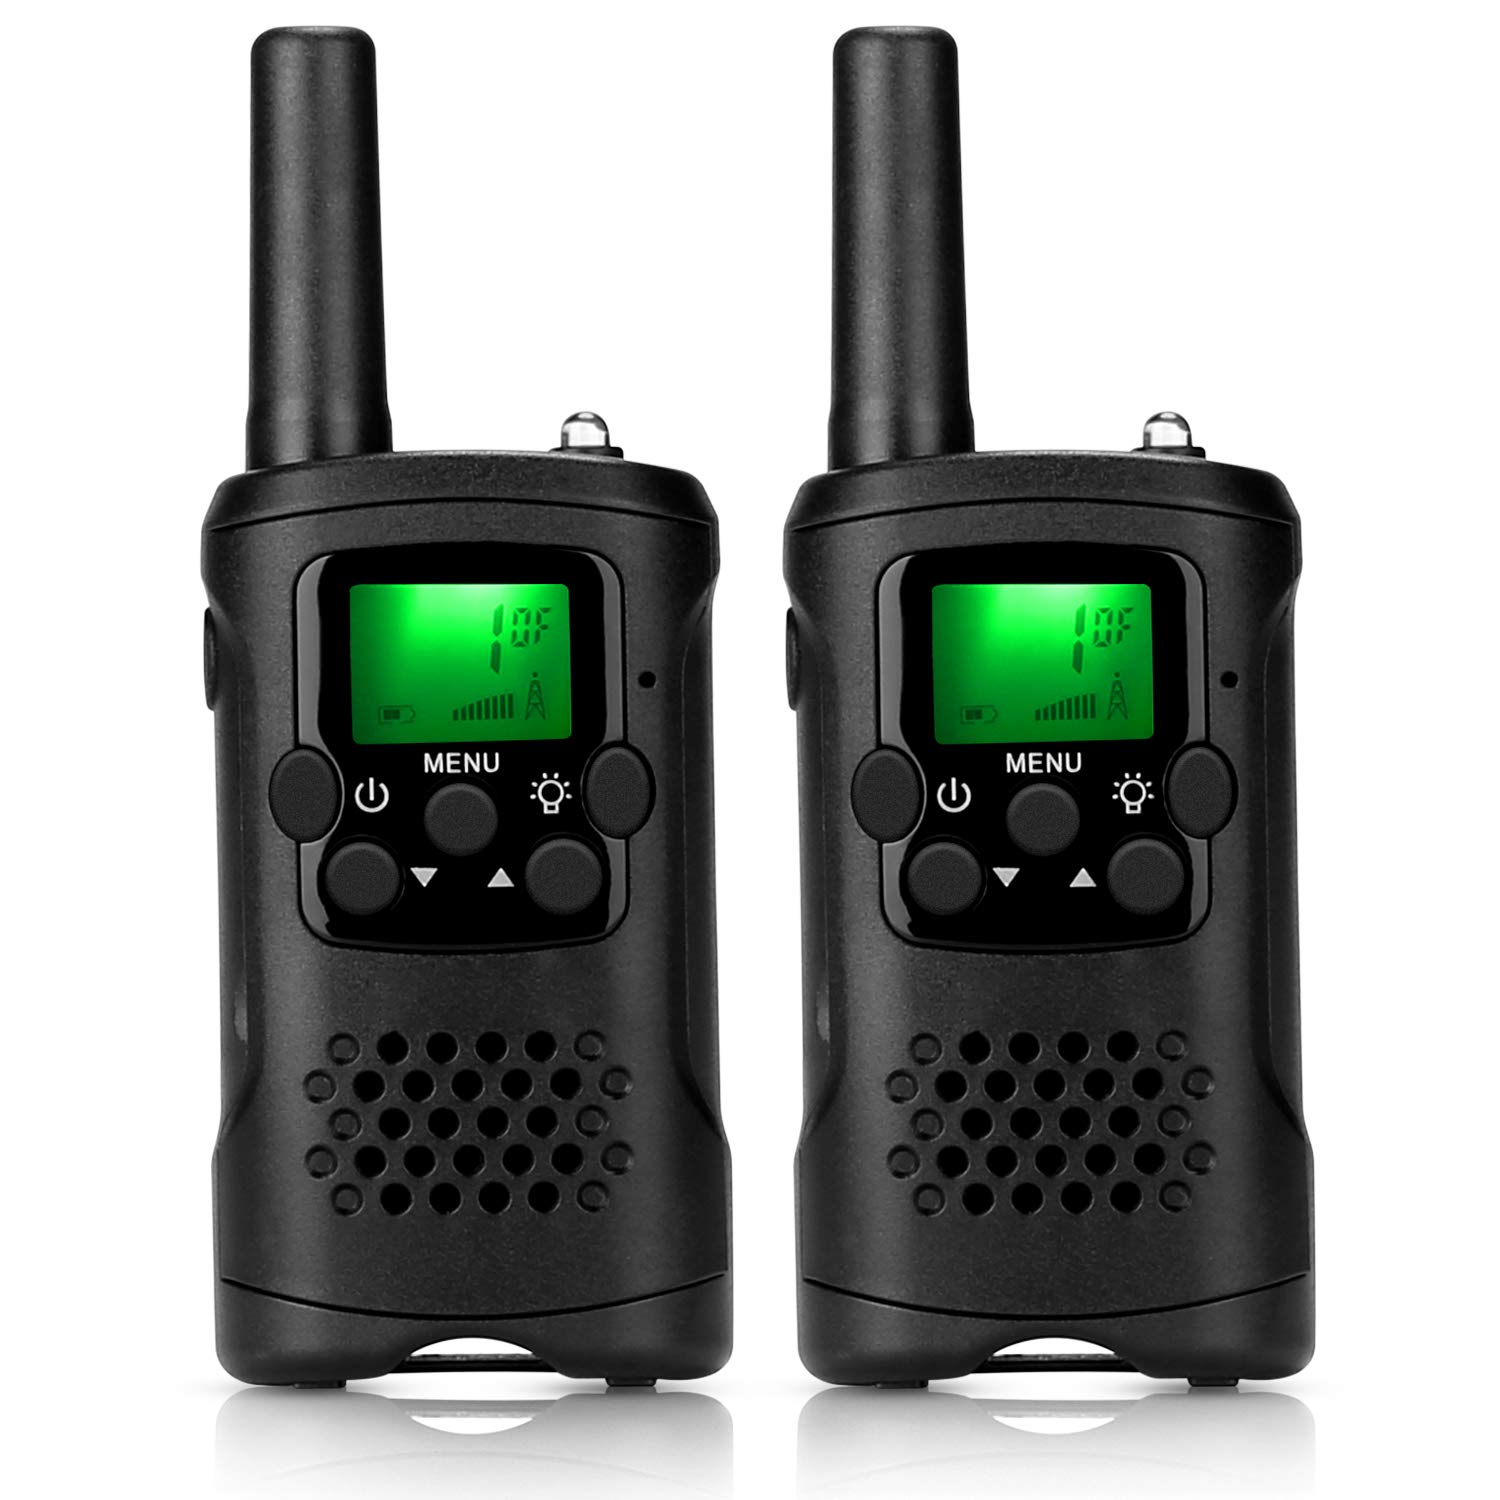 ieGeek Walkie Talkies for Kids, Toys for 3-12 Year Old Boys 22 Channel 2 Way Radio 3 Miles Long Range Handheld Battery Powered Walkie Talky with Flashlight Best Children's Day Gift (Black) by ieGeek (Image #1)